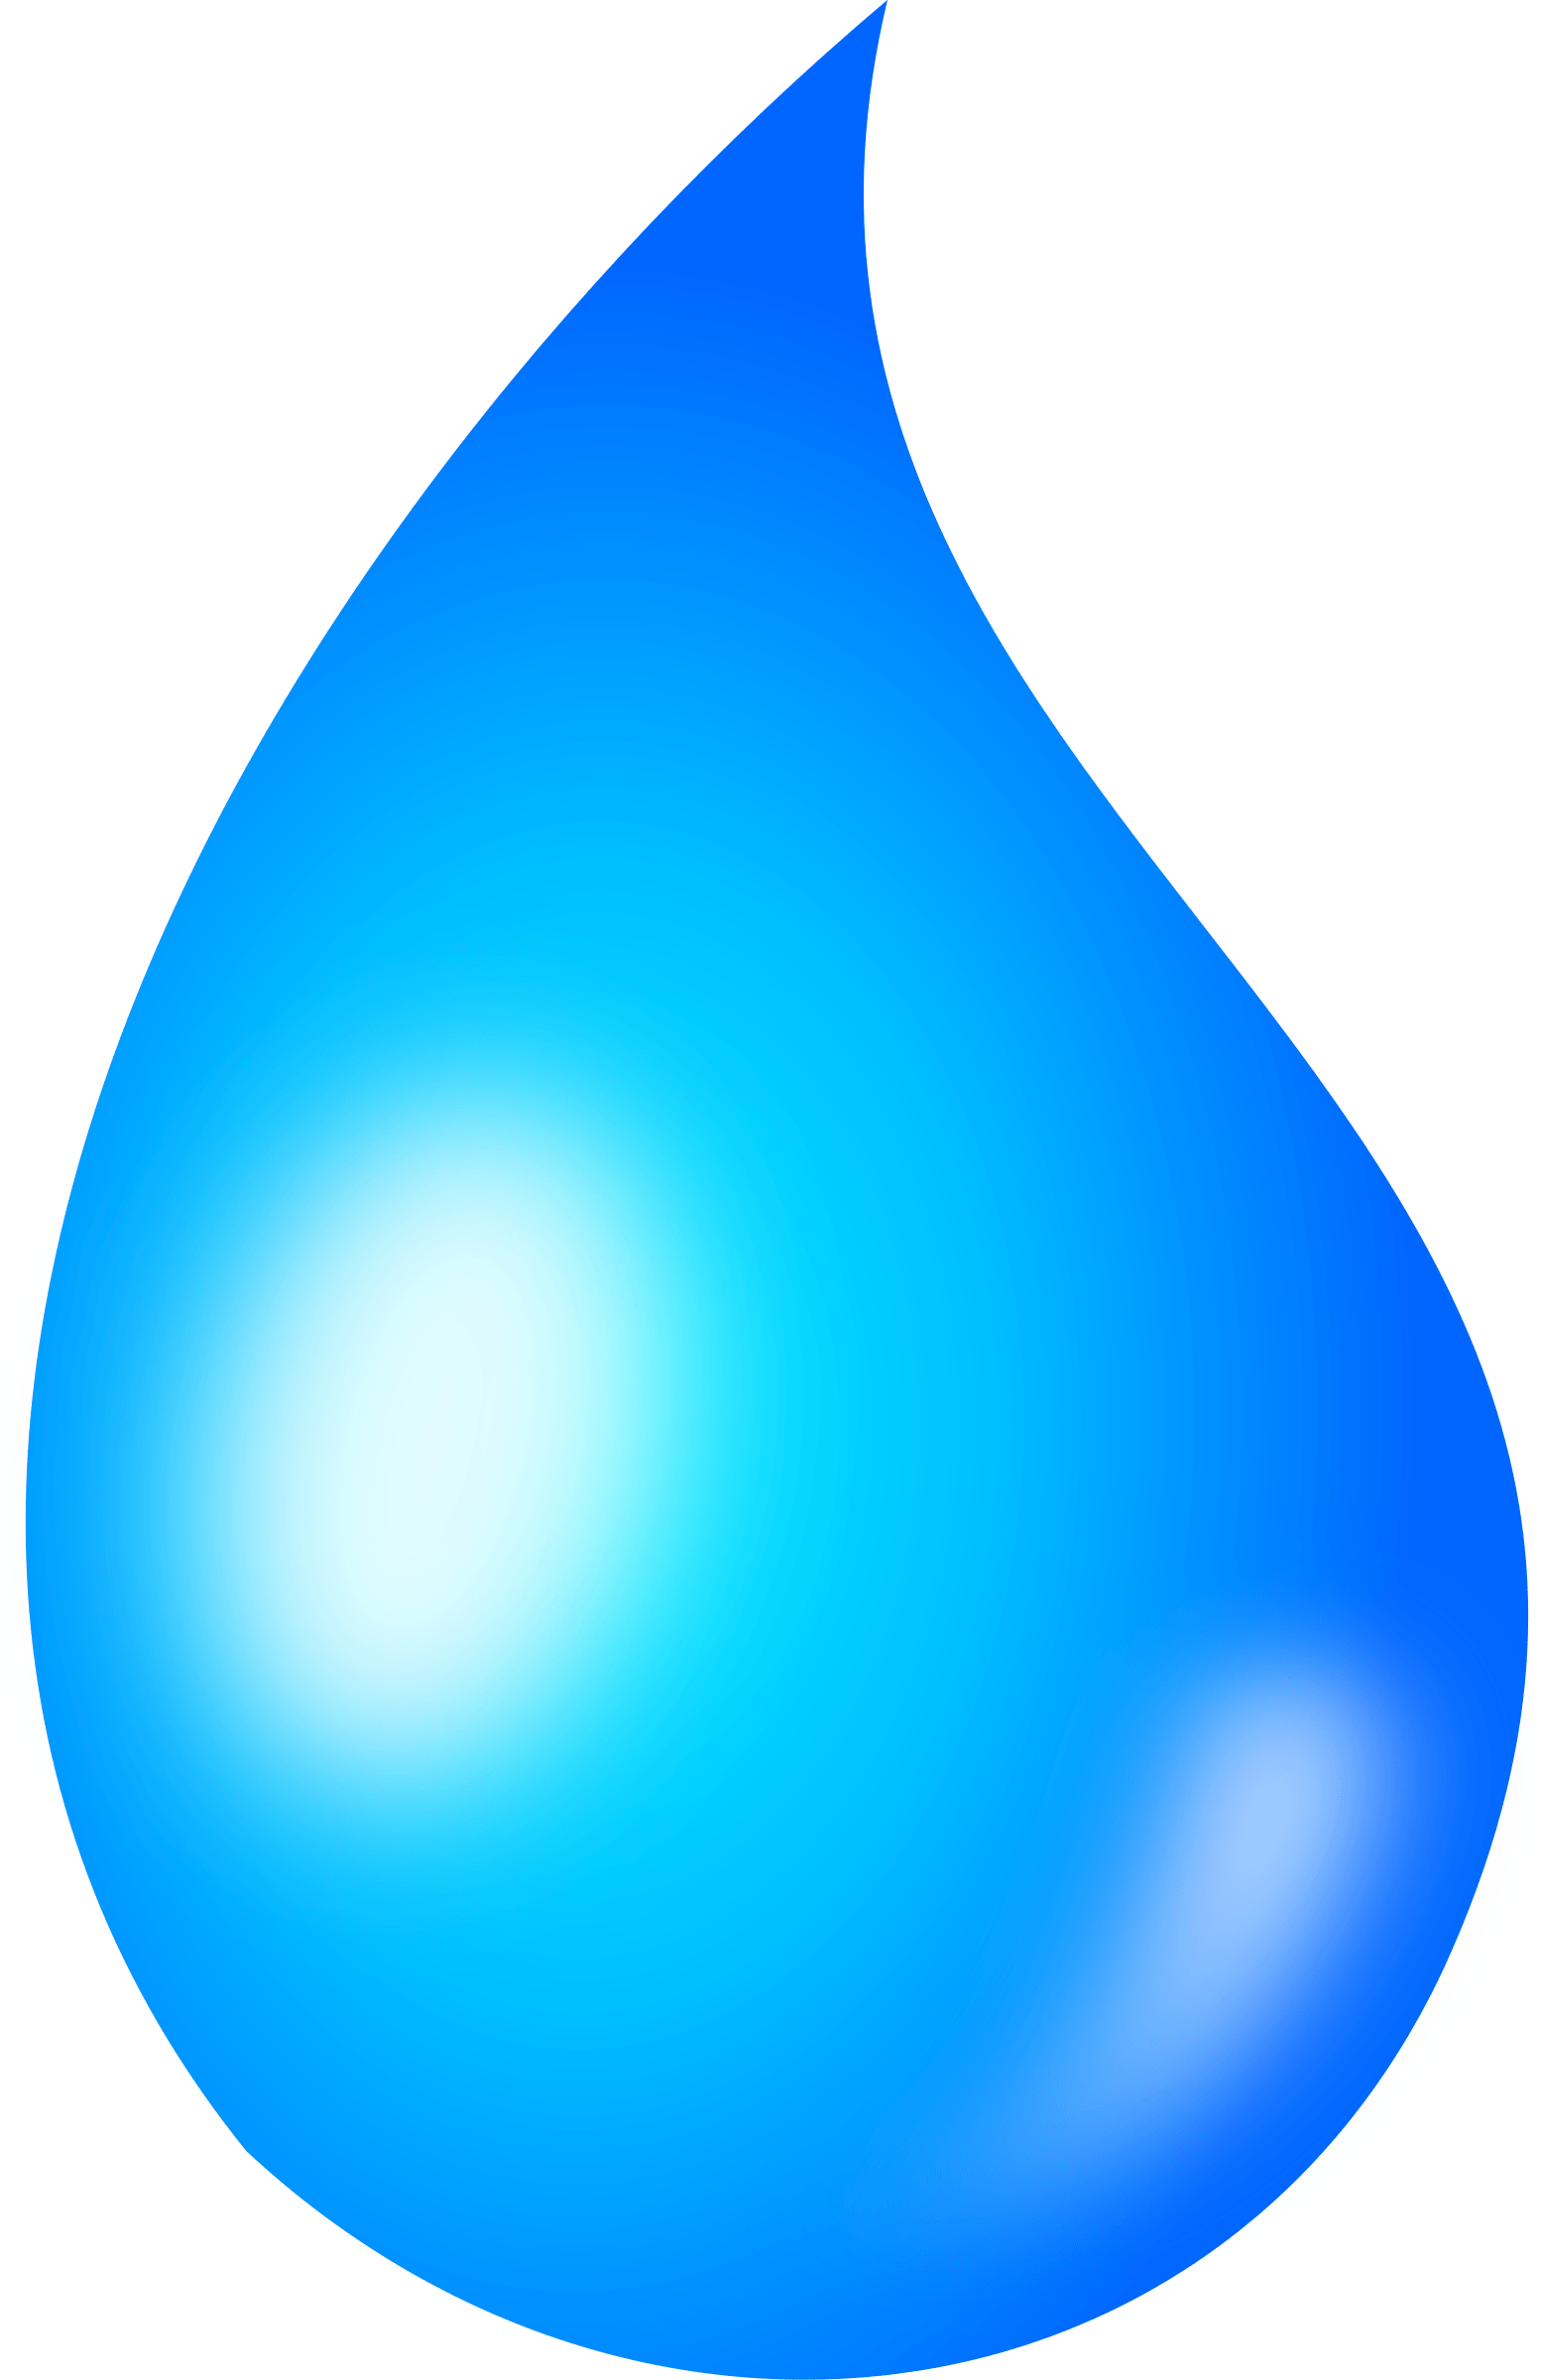 Free cliparts download clip. Water clipart shape